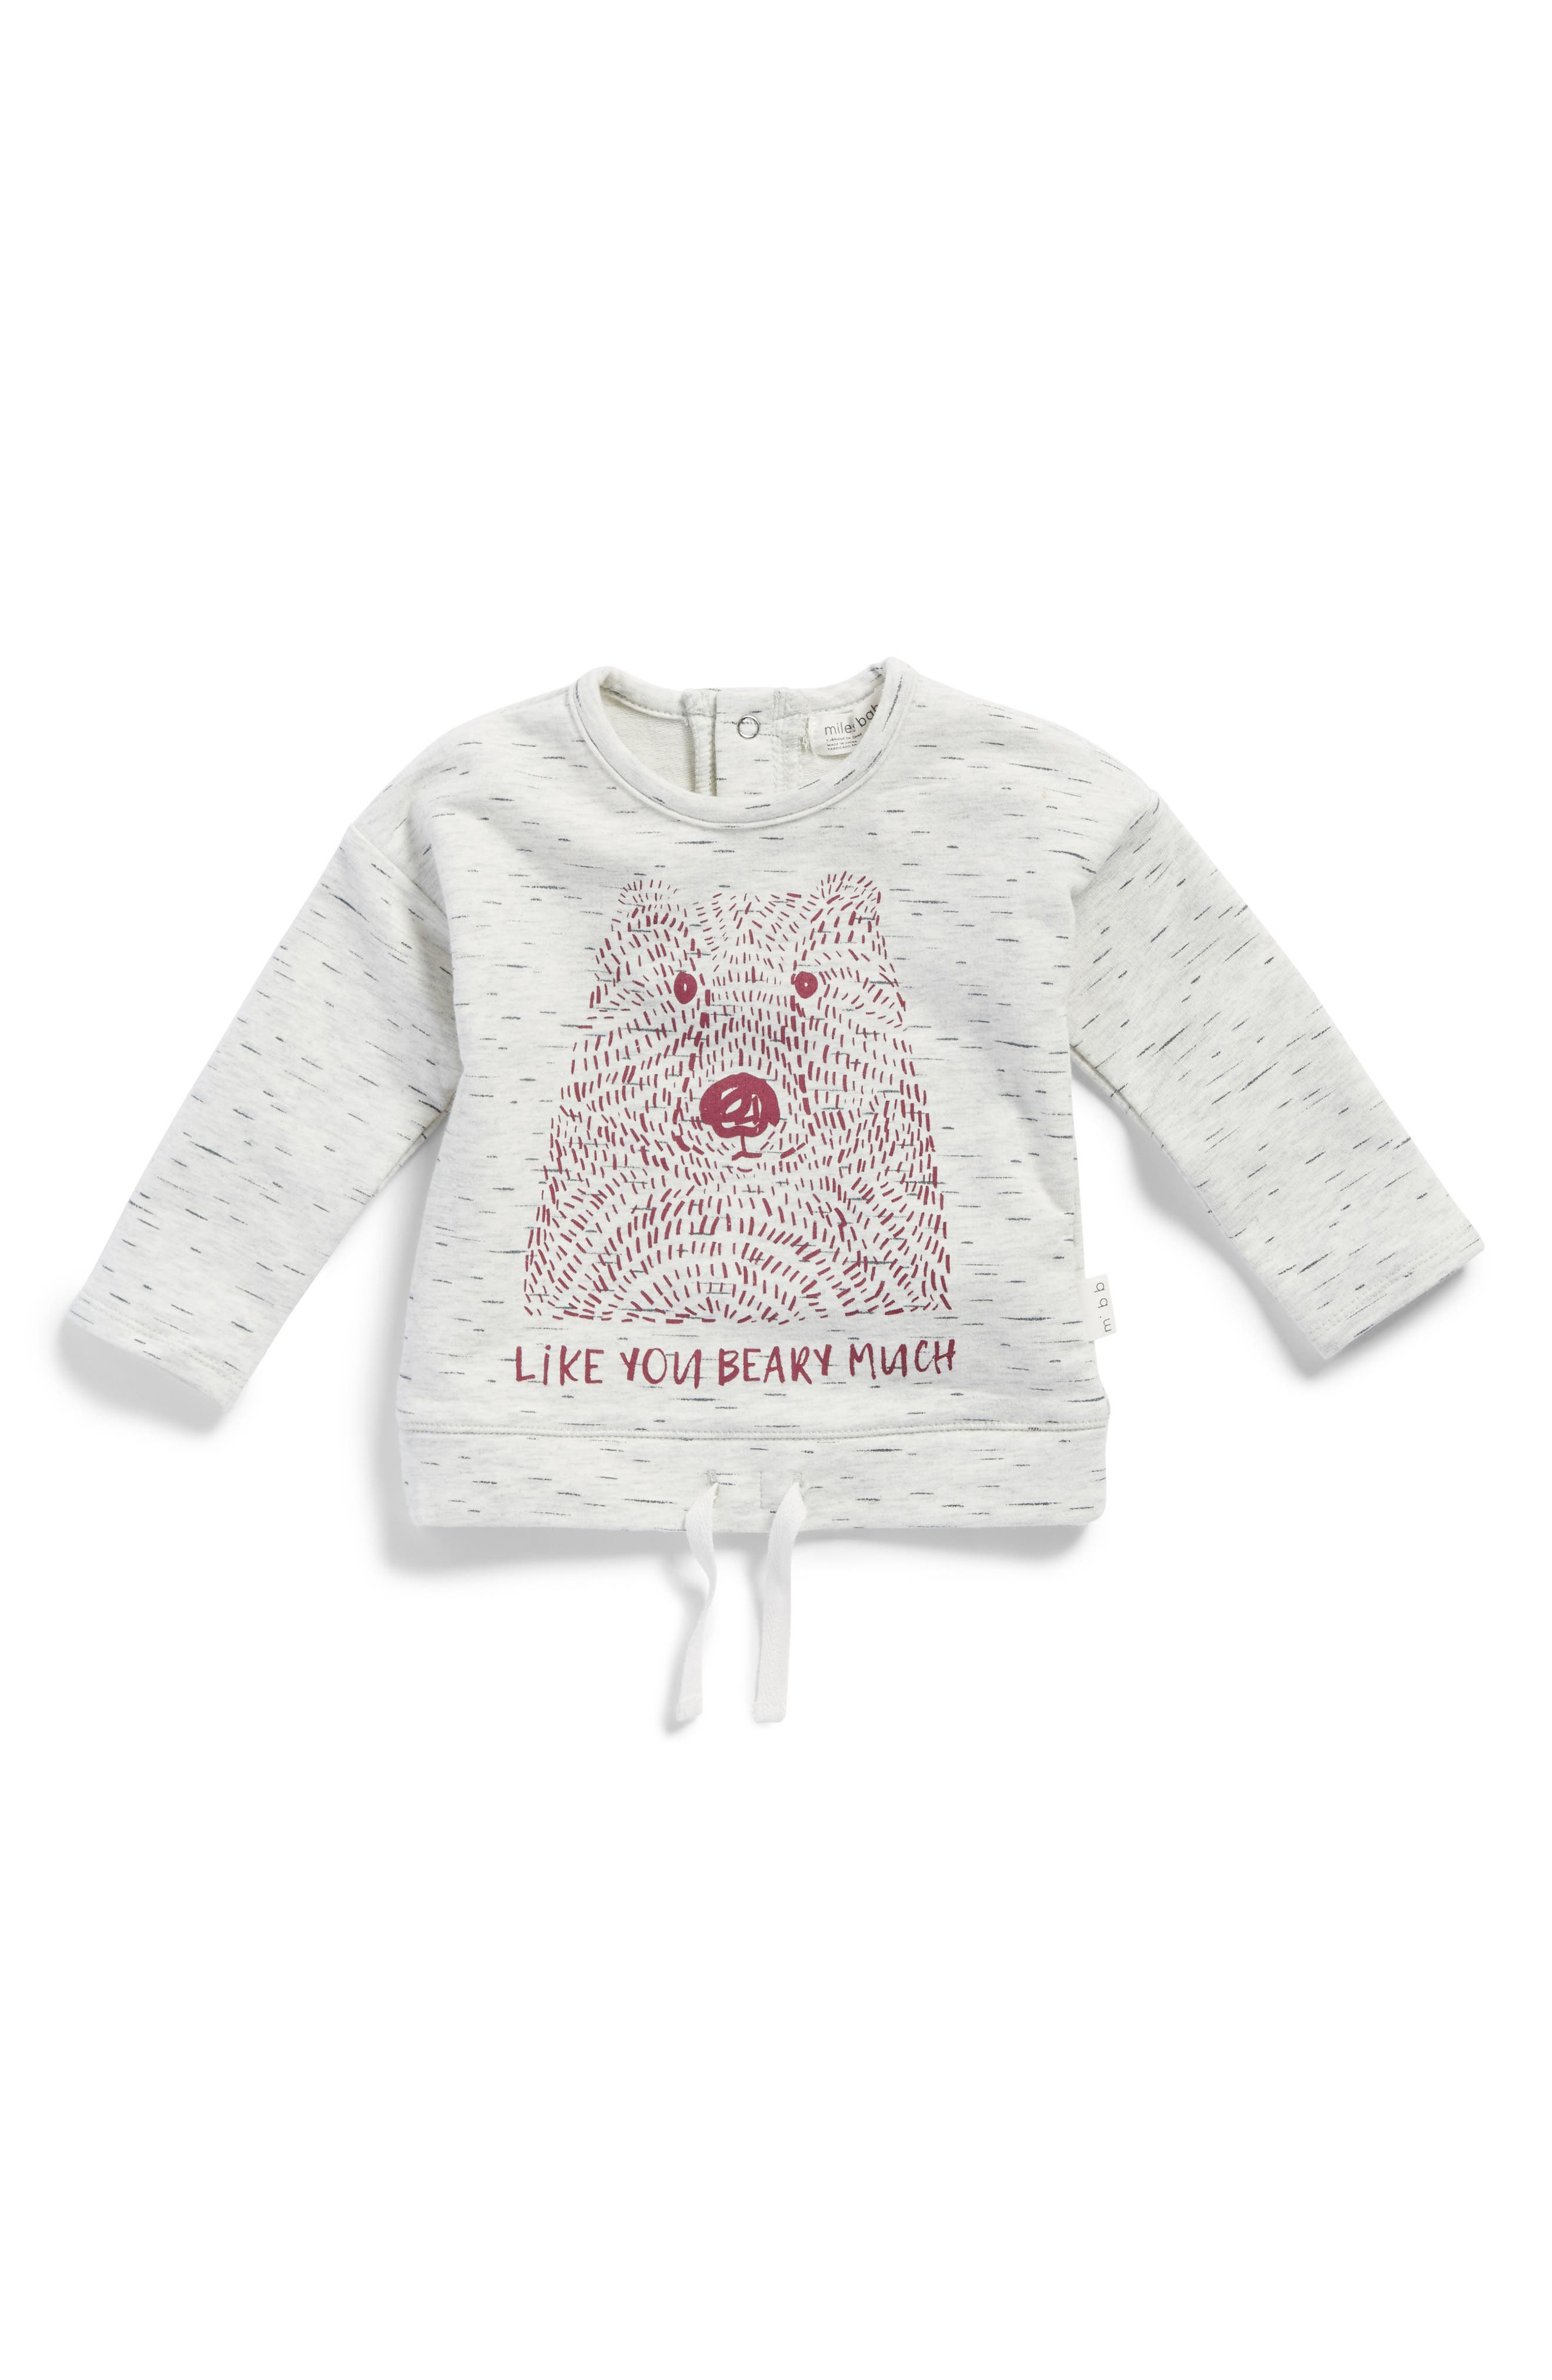 Miles Baby Like You Beary Much Graphic Tee (Baby Girls)